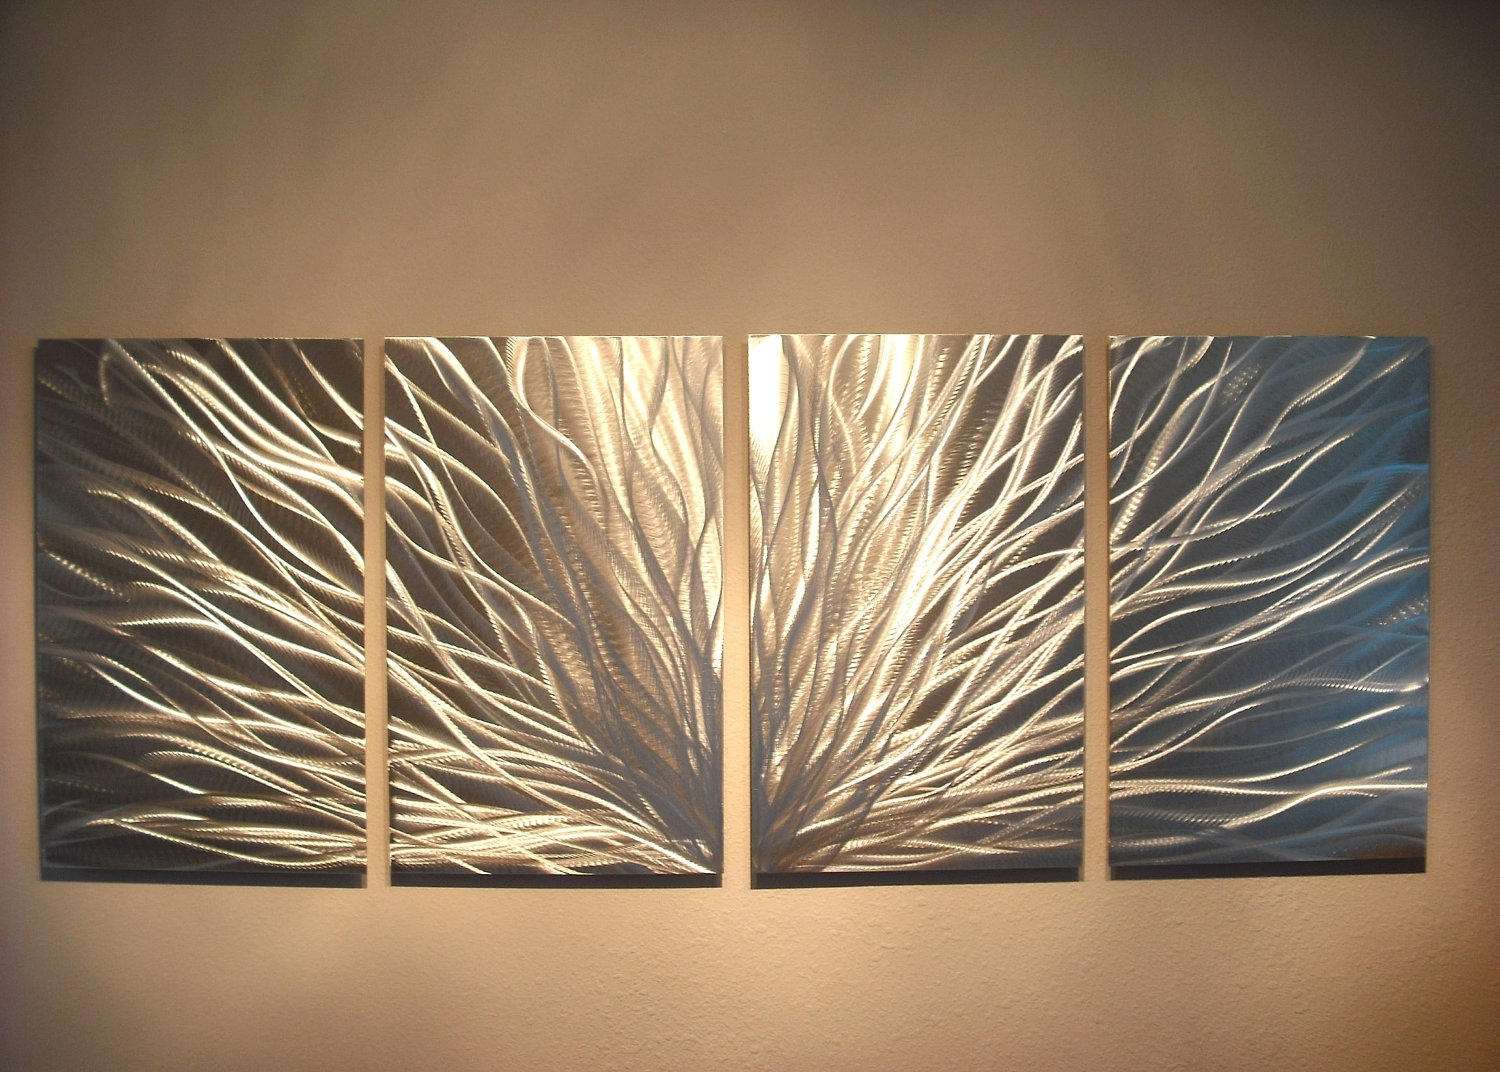 Paints : Metal Wall Art Argos With Metal Wall Art Decor Abstract With 2018 Abstract Metal Wall Art Australia (View 11 of 20)